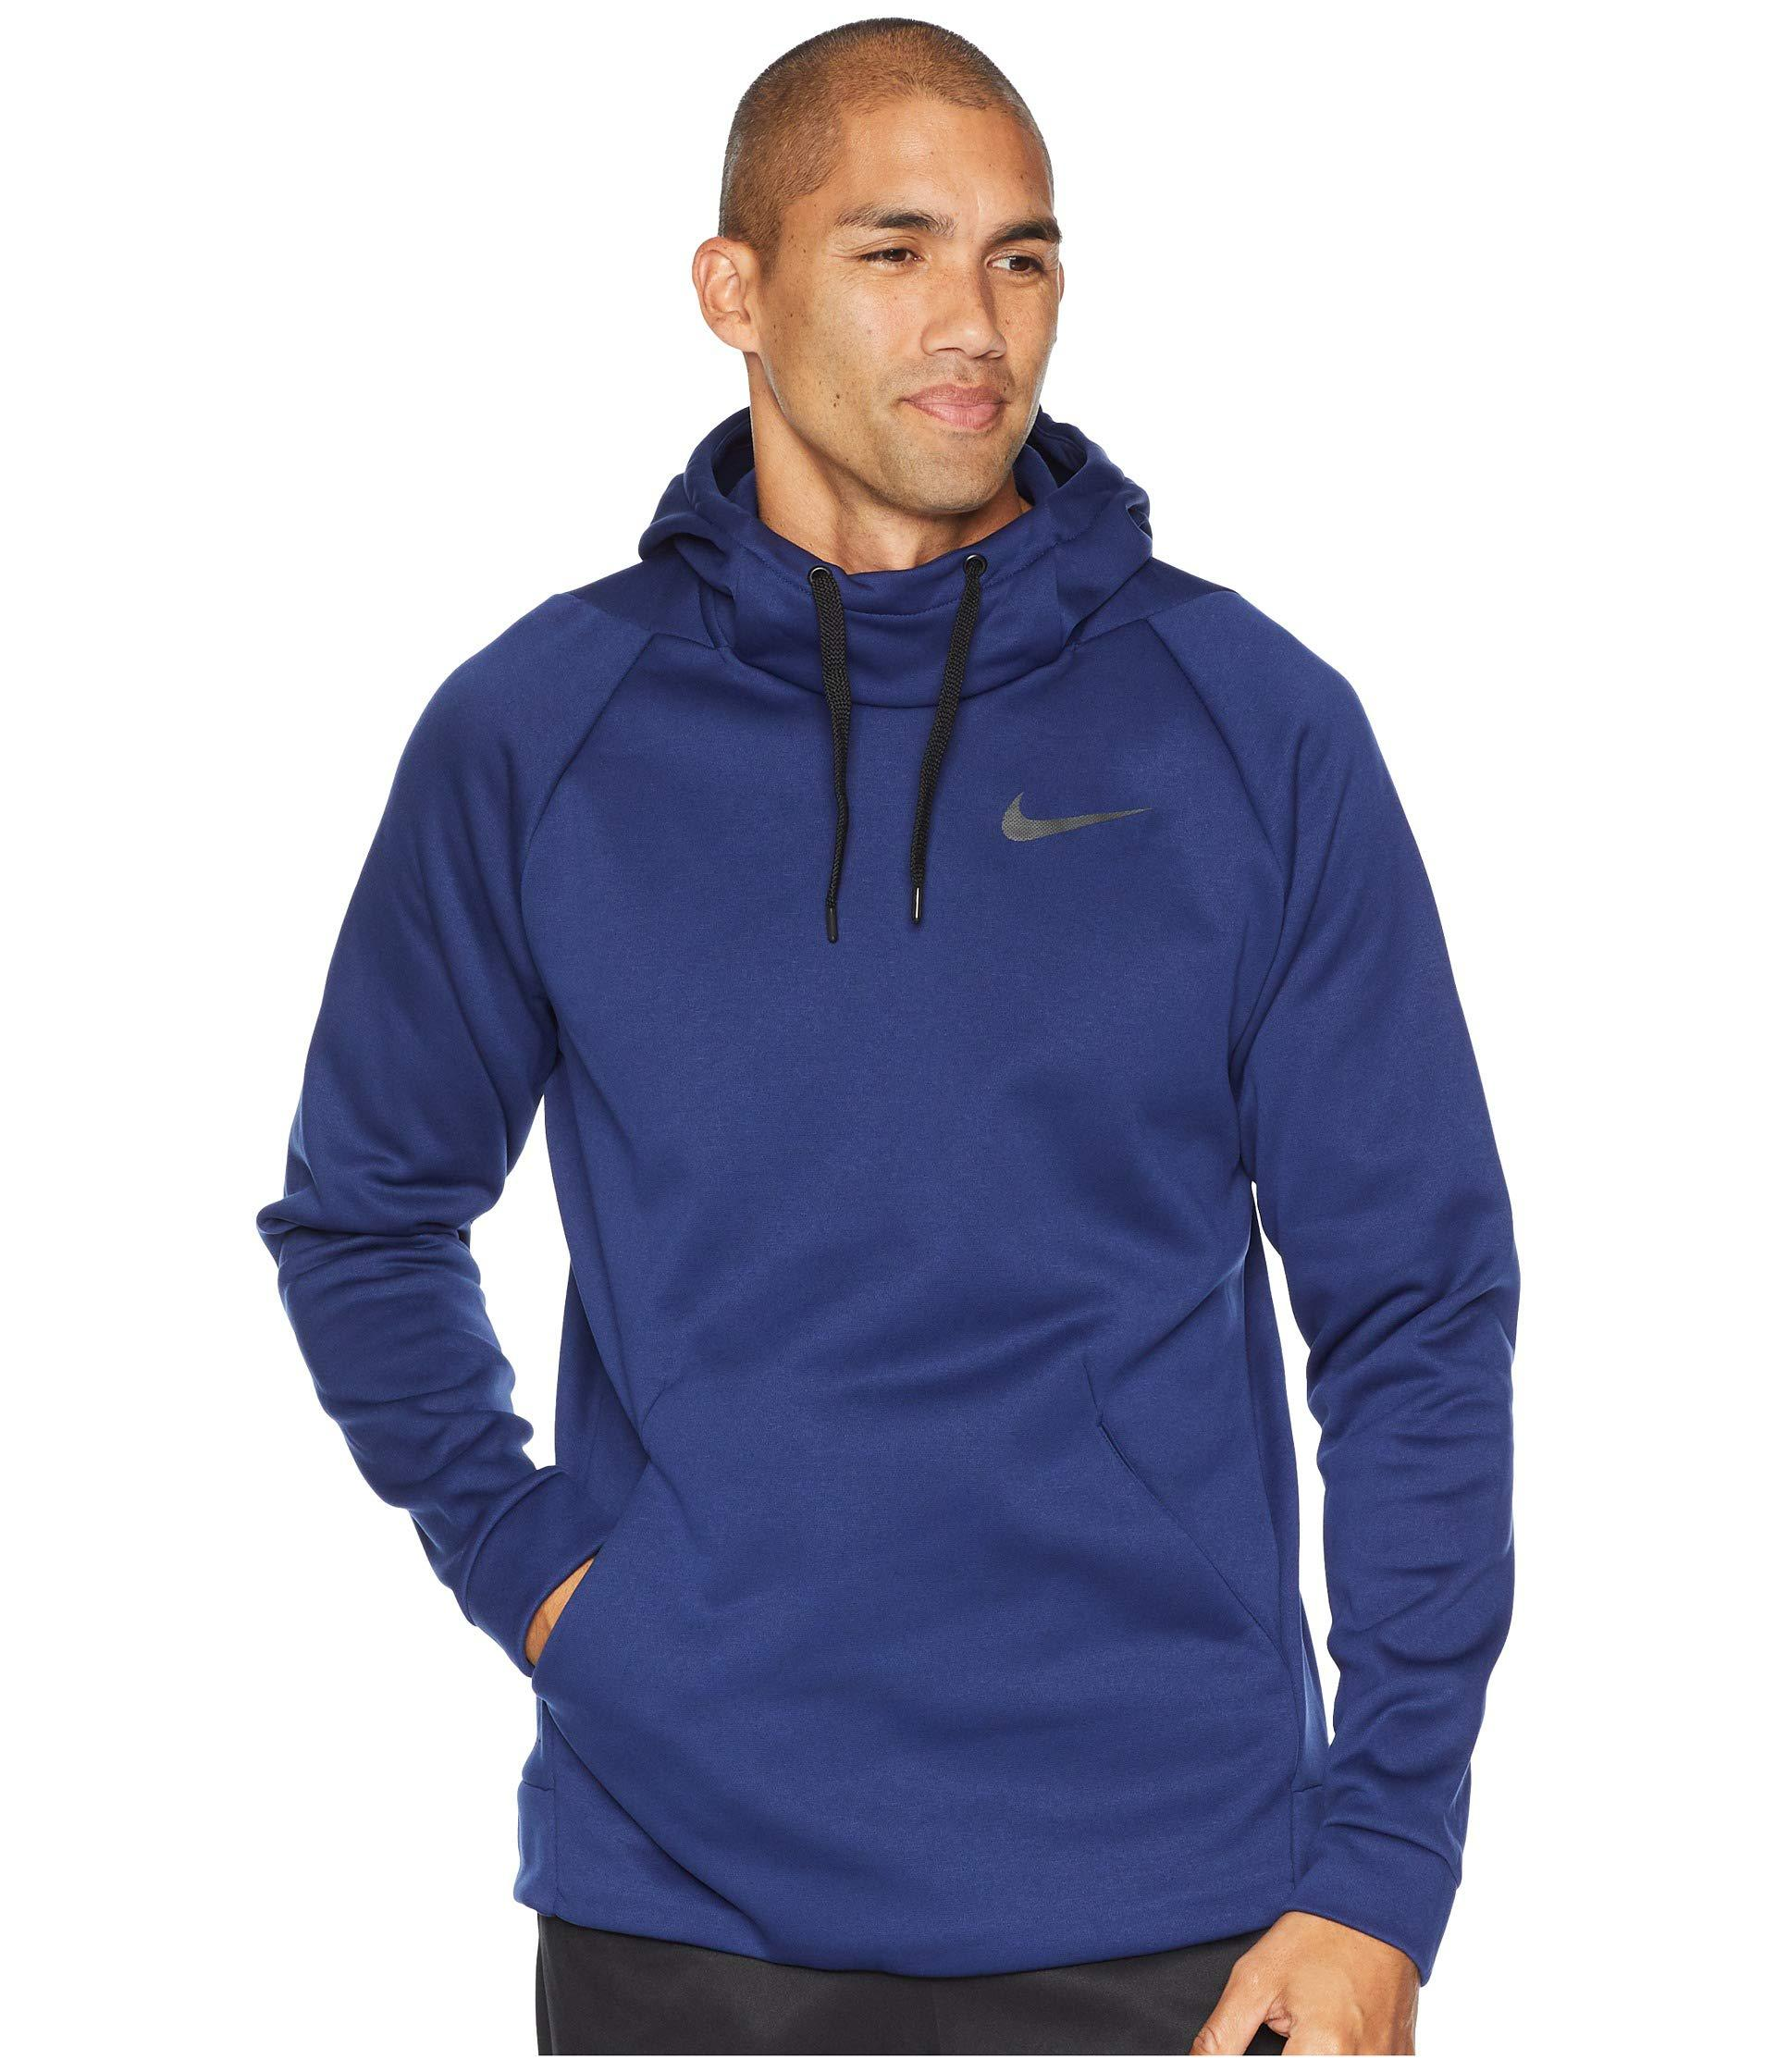 c22e5590c580 Lyst - Nike Thermal Hoodie Pullover in Blue for Men